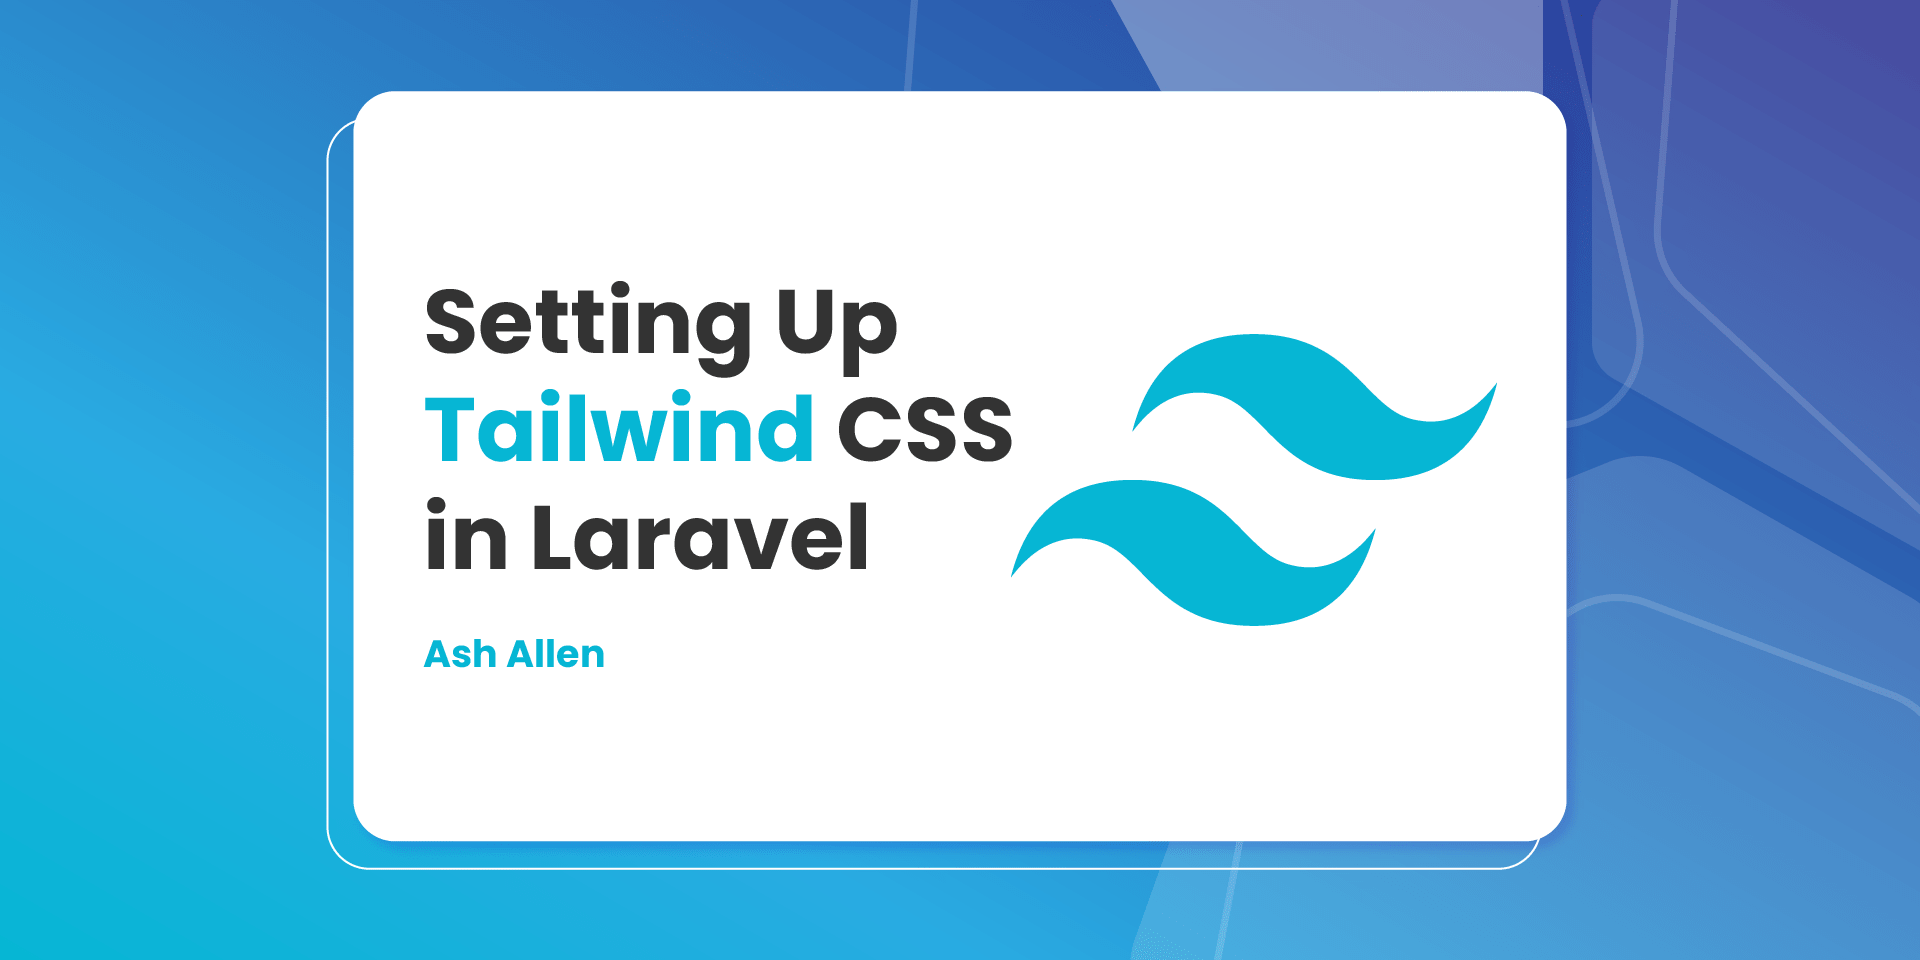 Learn about how to set up Tailwind CSS in your Laravel projects. This article also covers how to purge unneeded CSS classes.